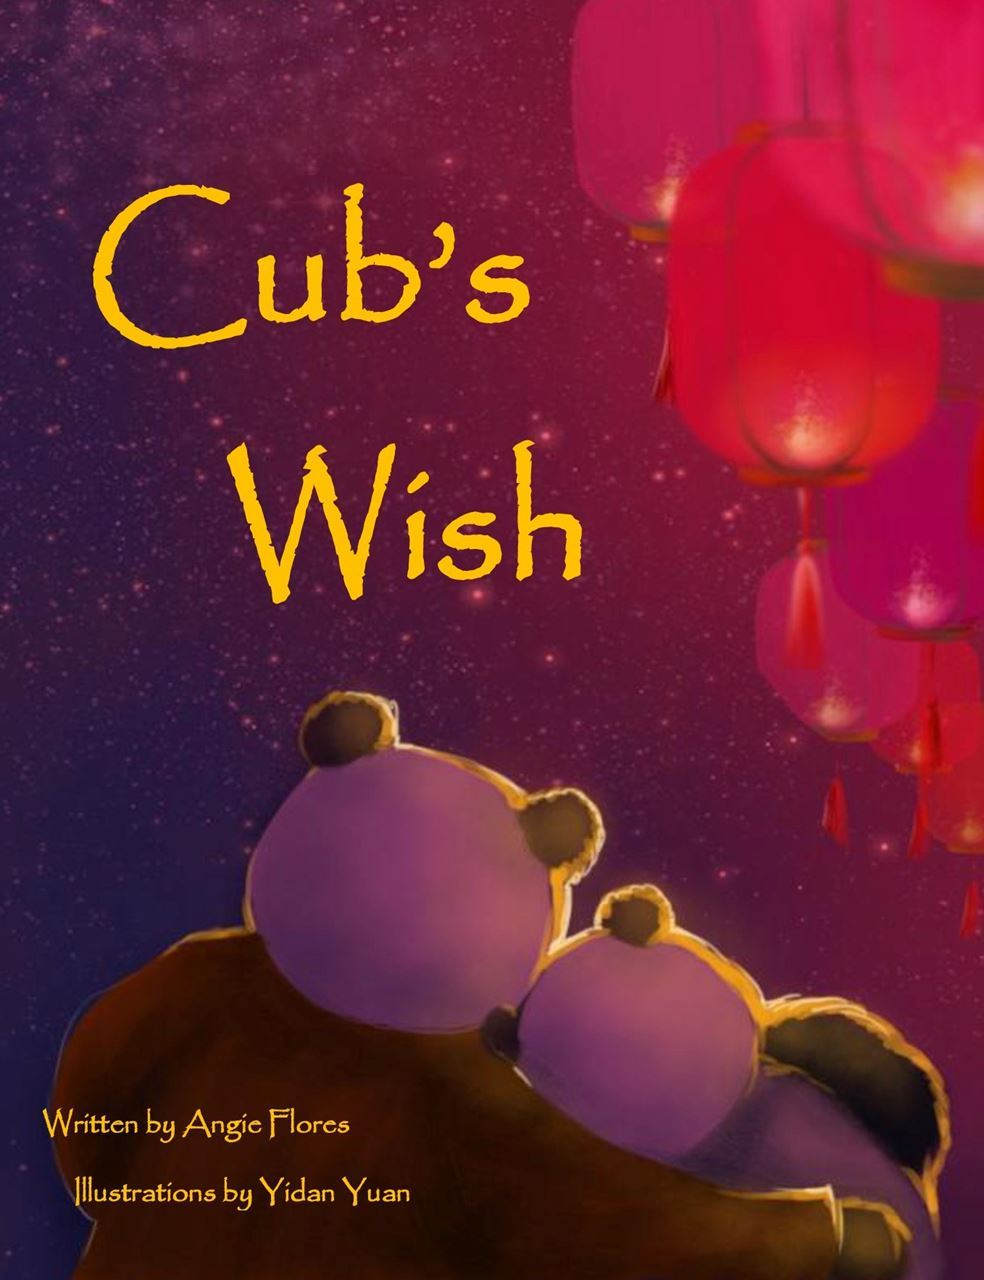 Cub's Wish picture book by Angie Flores